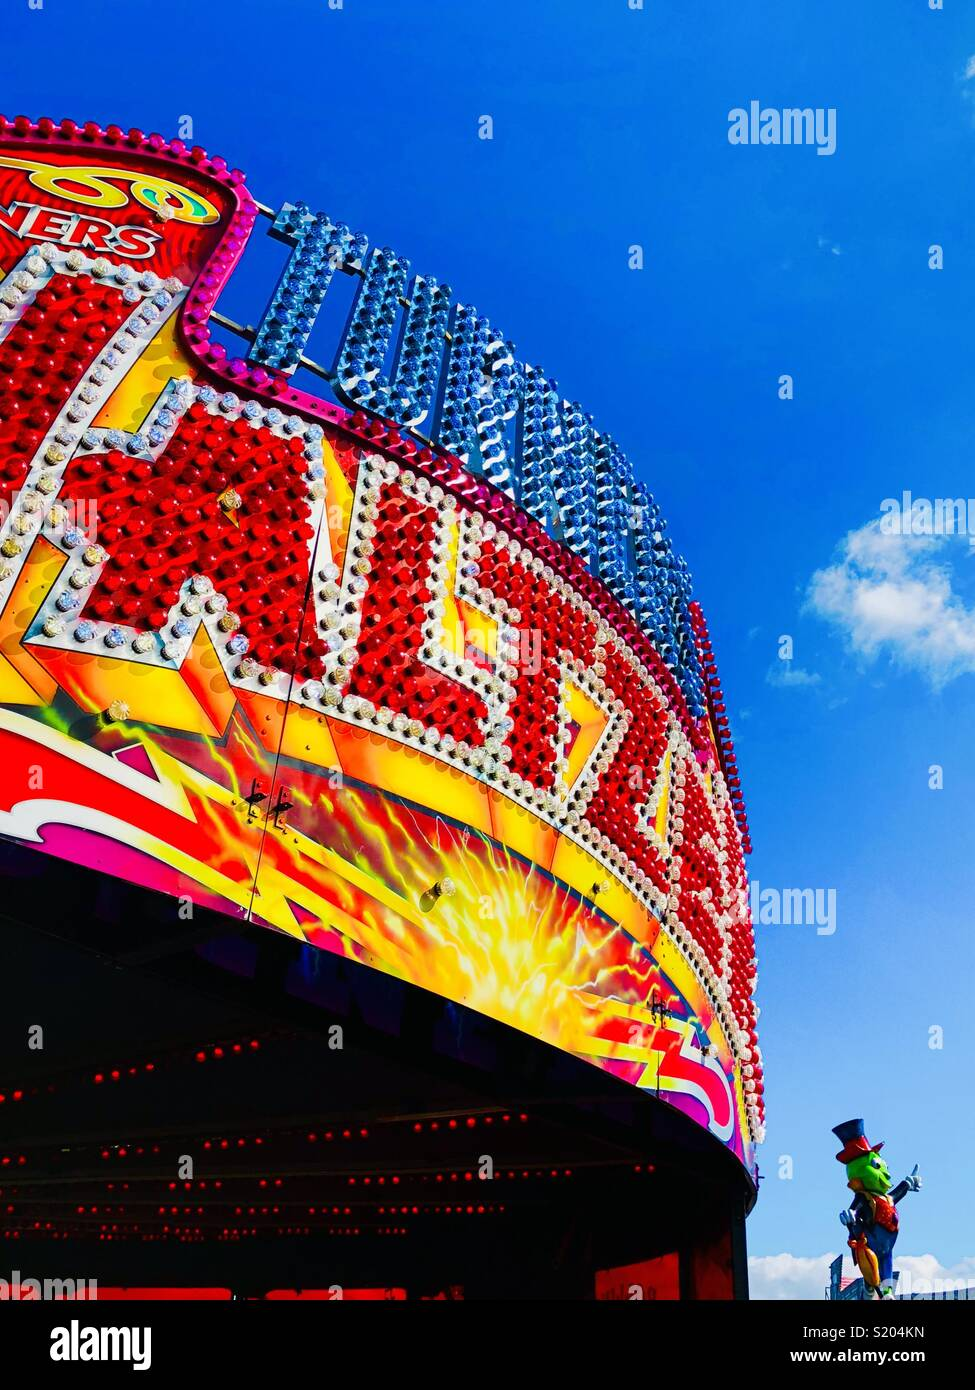 Fairground and blue sky in Whitley Bay, UK - Stock Image